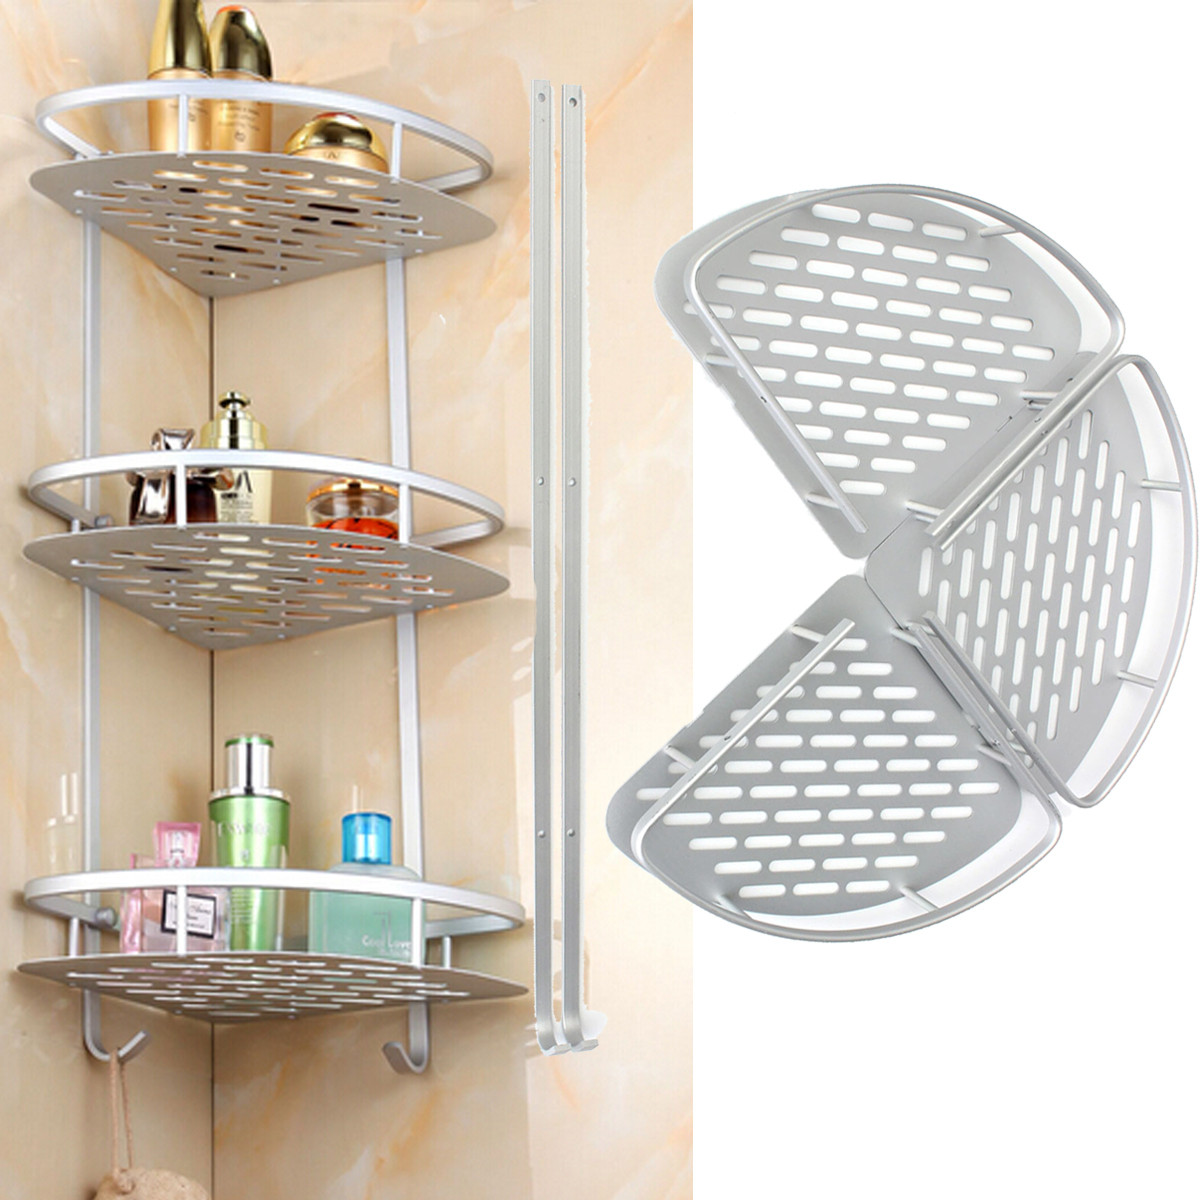 Rack Organizador De Baño:Triangular Shelf Shower Caddy Bathroom